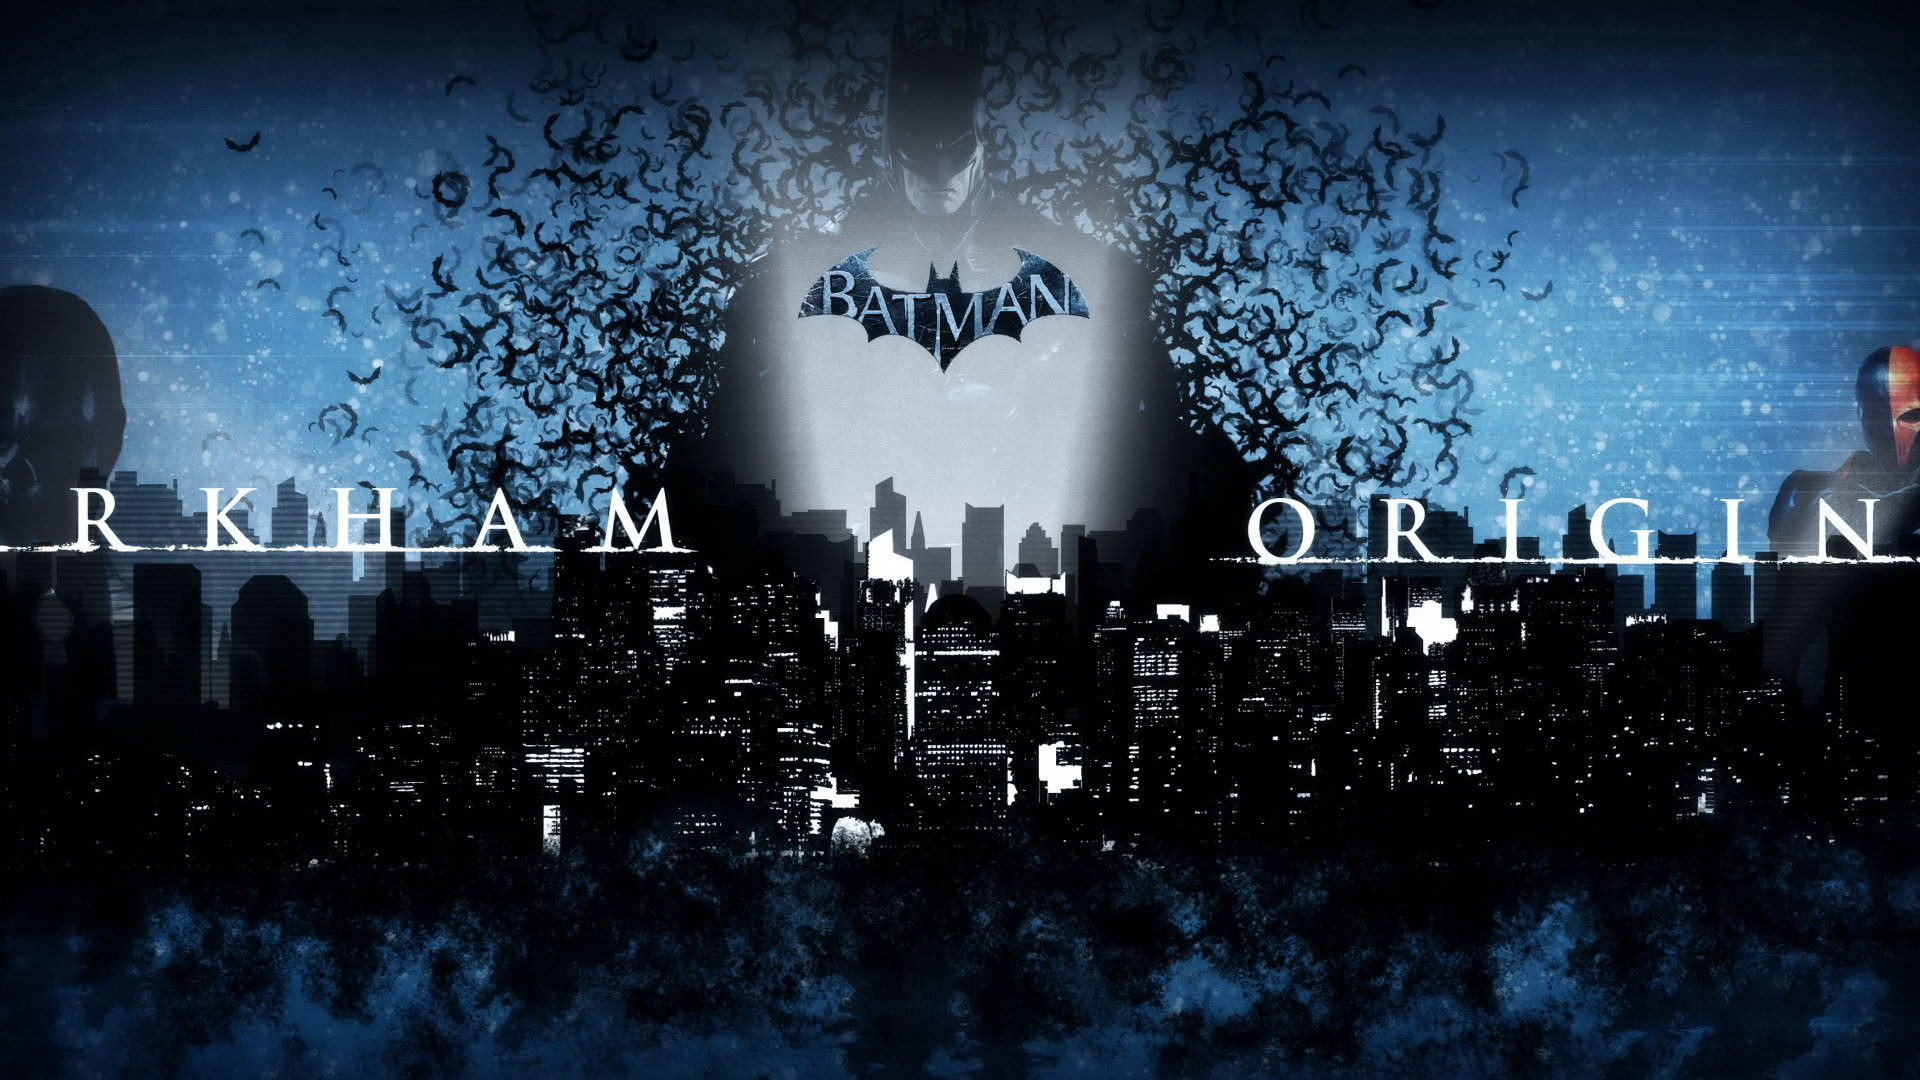 1920x1080 Batman HD Wallpapers Wallpaper 900×506 Batman Arkham Origins Wallpaper (33  Wallpapers) | Adorable Wallpapers | Desktop | Pinterest | Batman arkham  origins ...